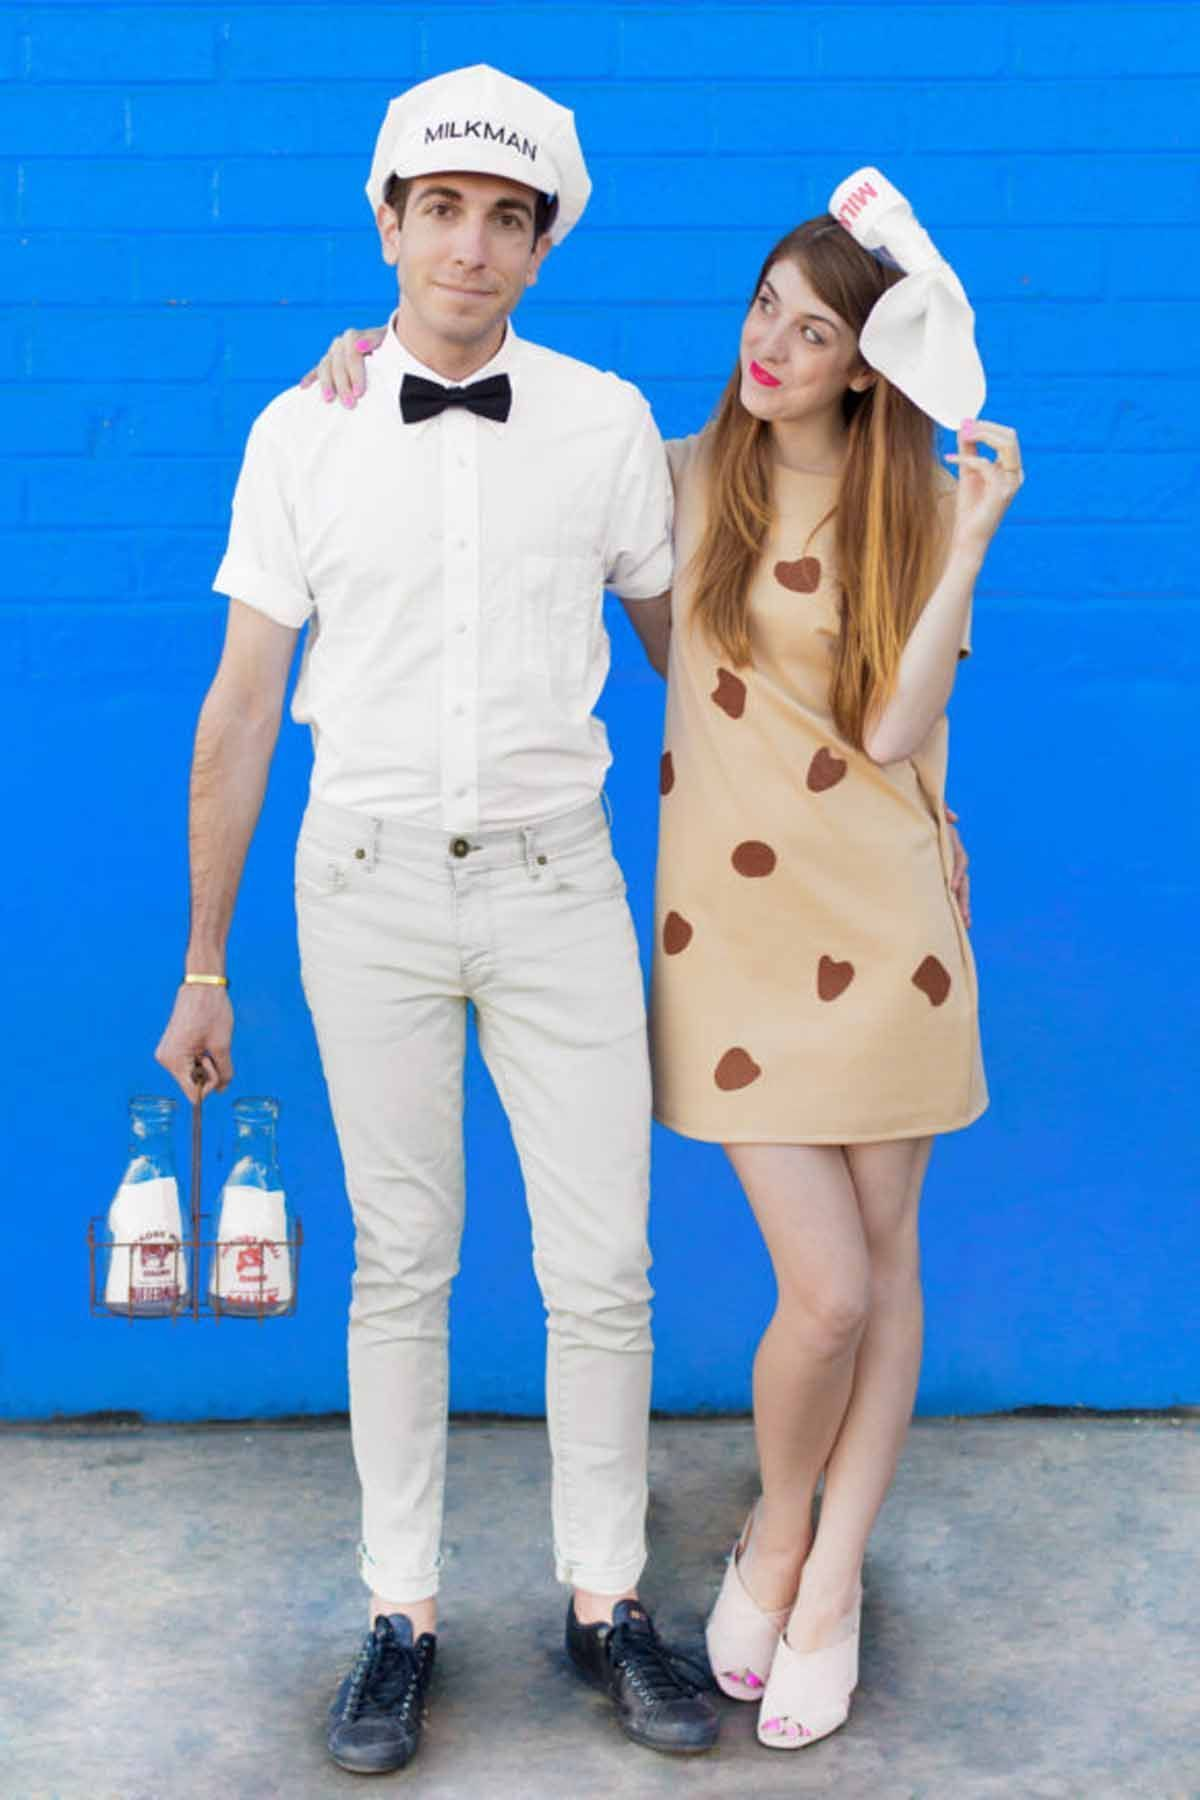 50+ Cute Couples Halloween Costumes 2017 - Best Ideas for Duo Costumes  sc 1 st  Pinterest & 50+ Cute Couples Halloween Costumes 2017 - Best Ideas for Duo ...